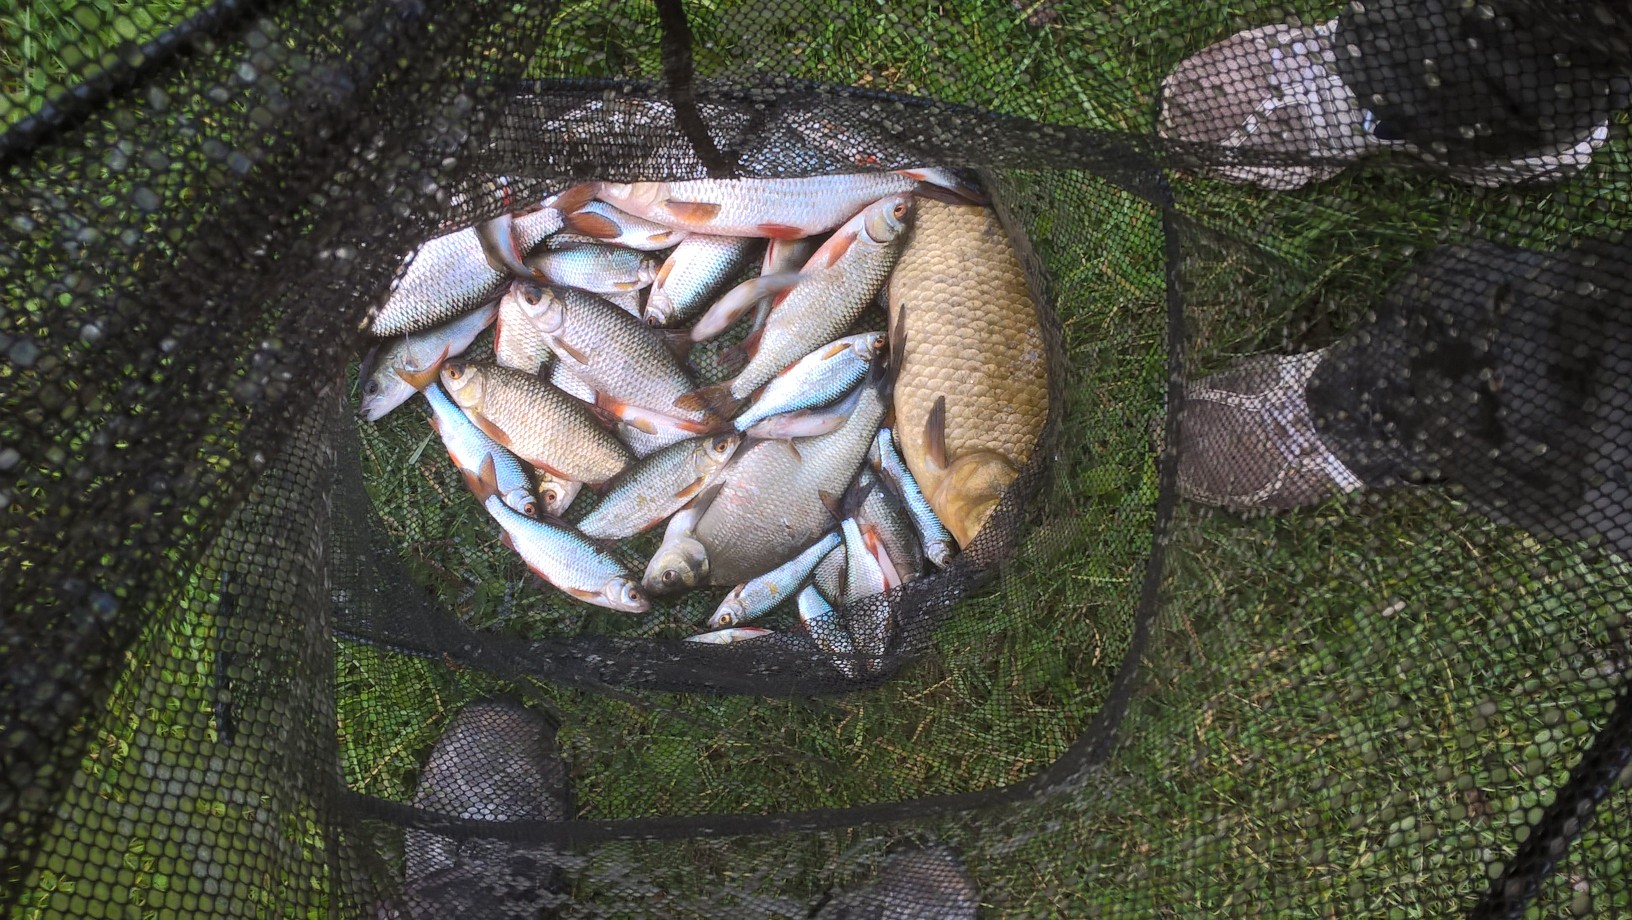 A net of roach and a nice crucian caught by Christopher Heames on 08/10/16.